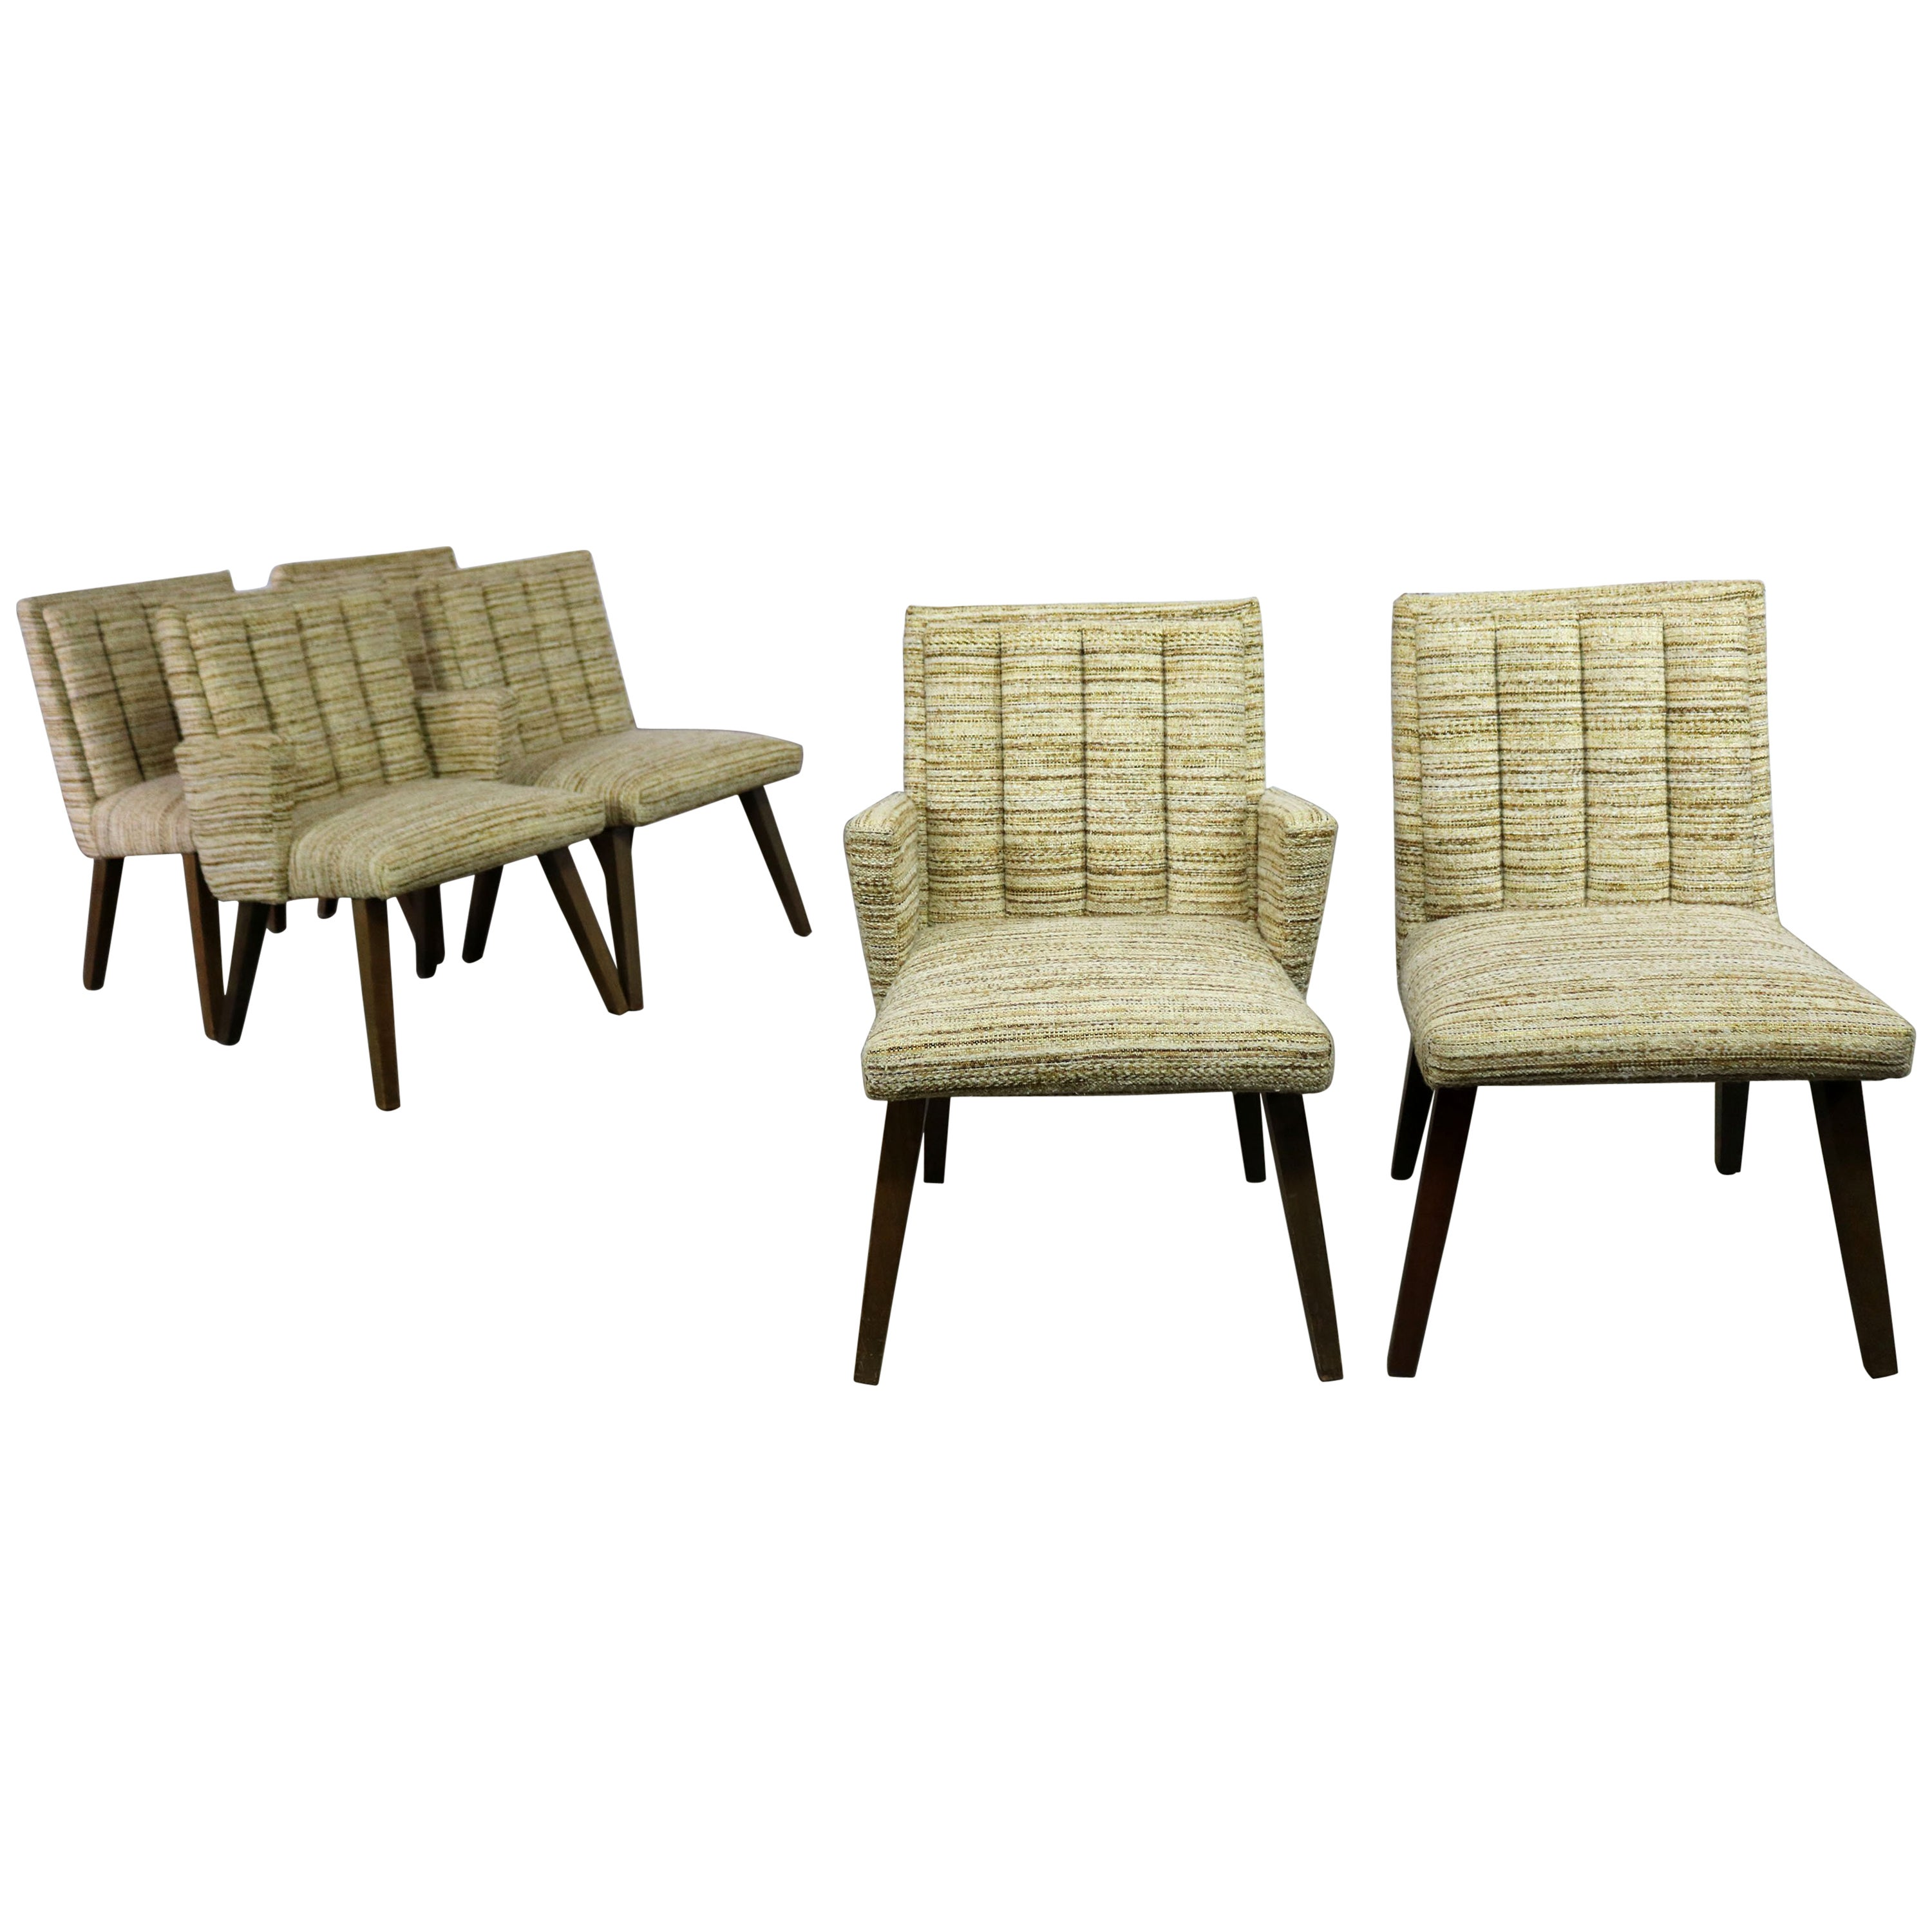 Architectural modern dining chairs by morris of california mid century modern at 1stdibs